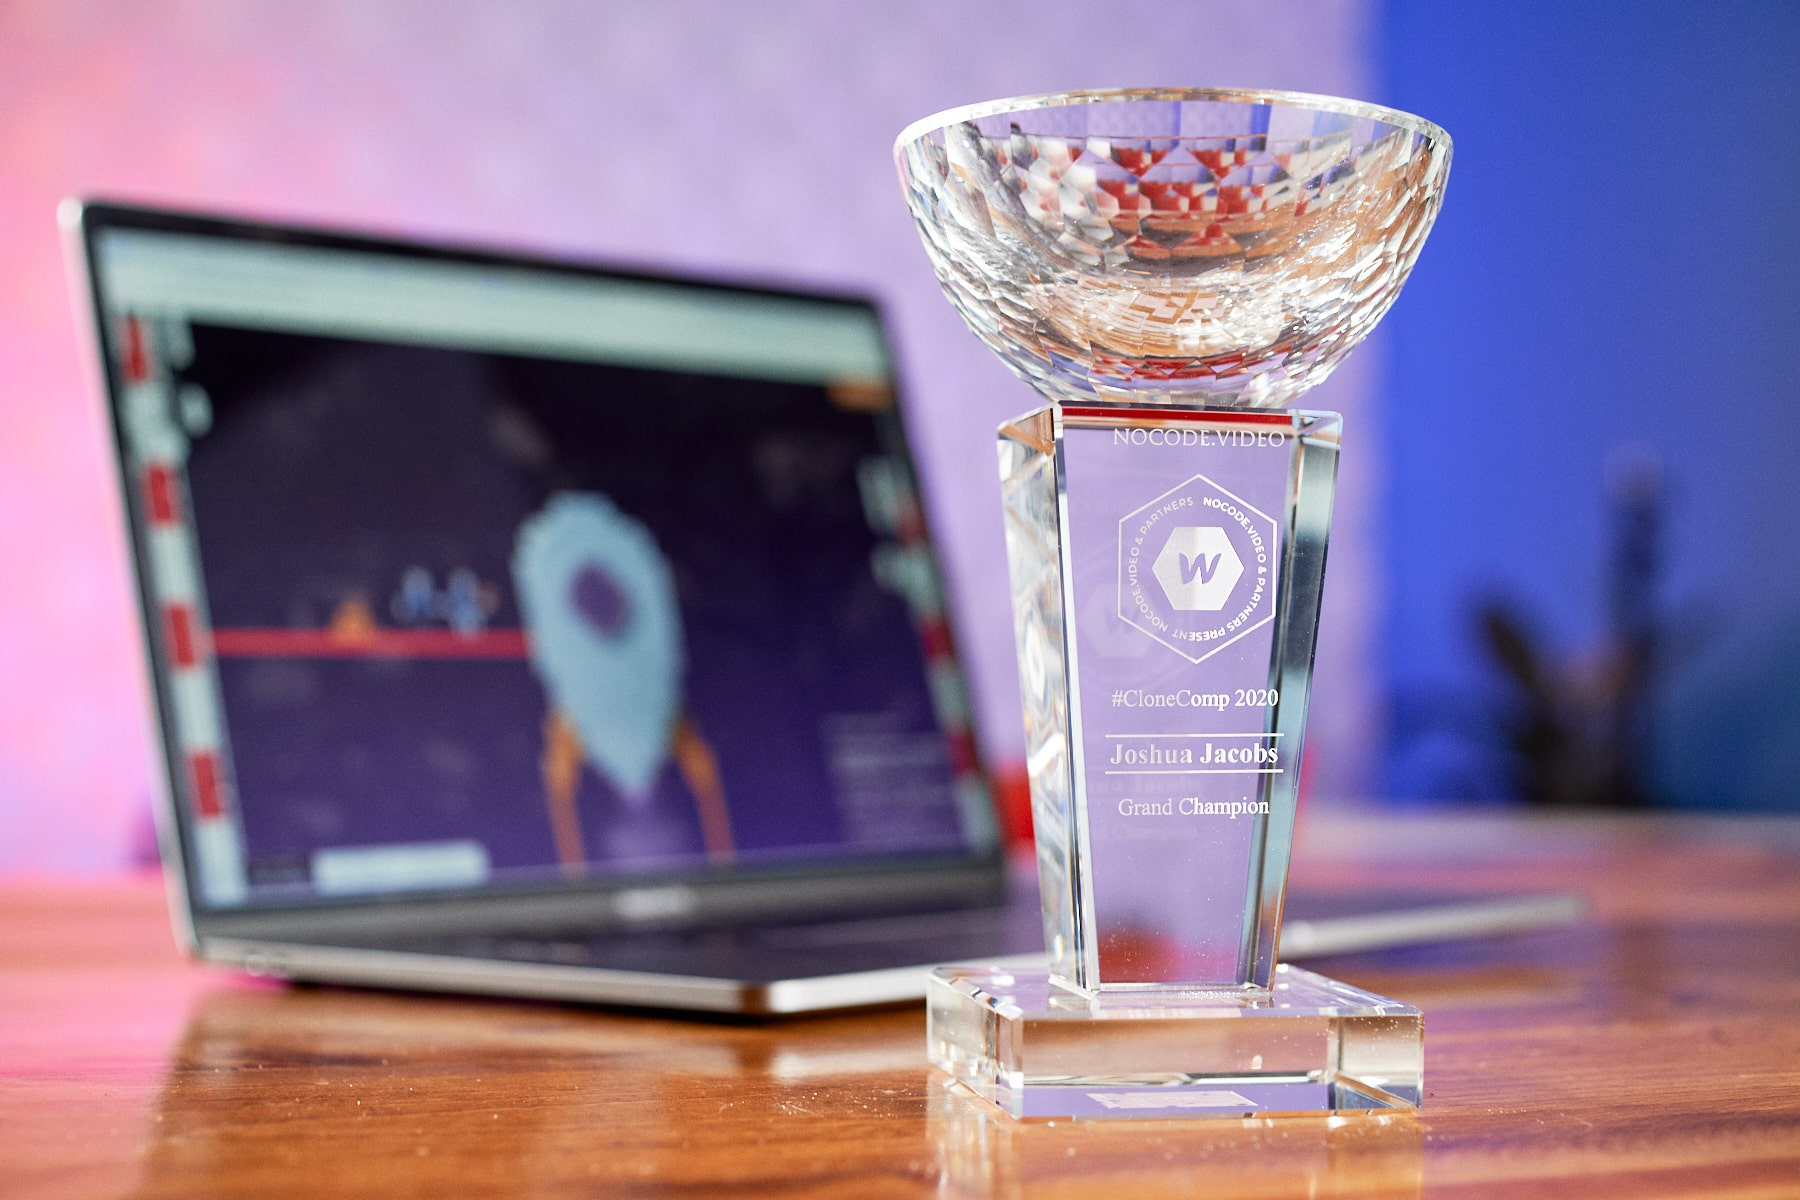 """A sick crystal trophy with the words """"Joshua Jacobs"""" on it"""